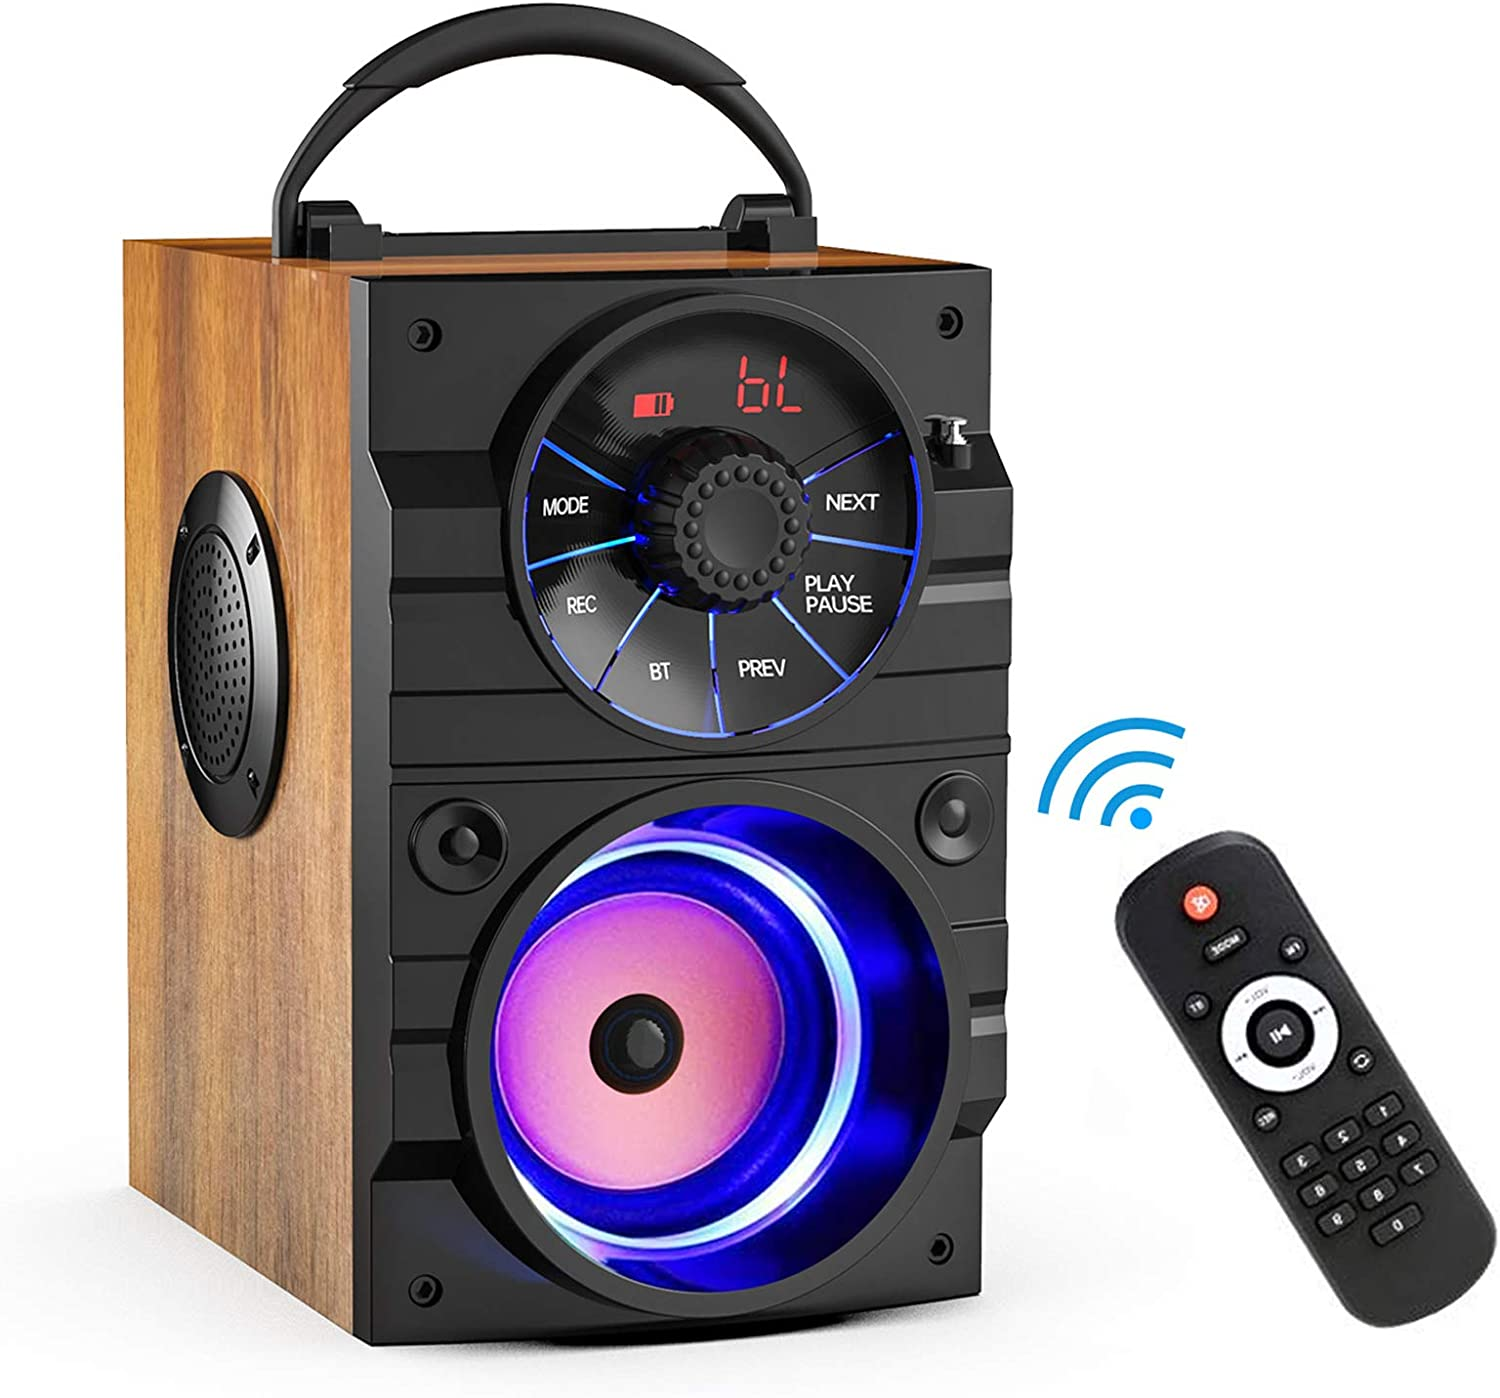 Portable Bluetooth Speakers with Subwoofer Rich Wireless St Super popular specialty store Bass Kansas City Mall